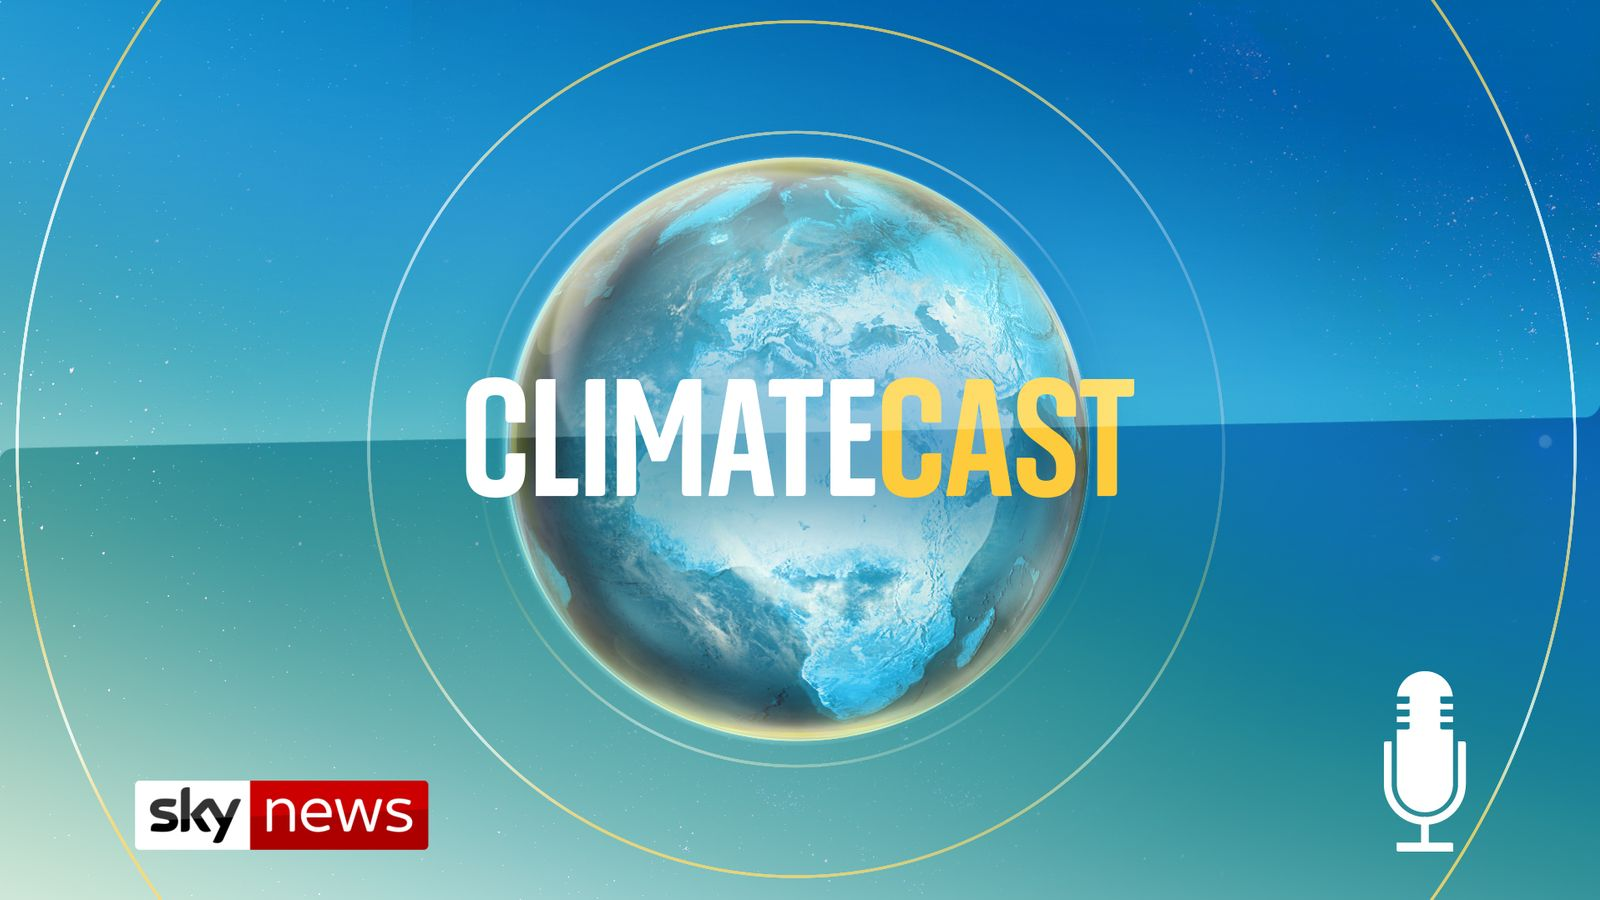 ClimateCast podcast: Can technology solve climate change?